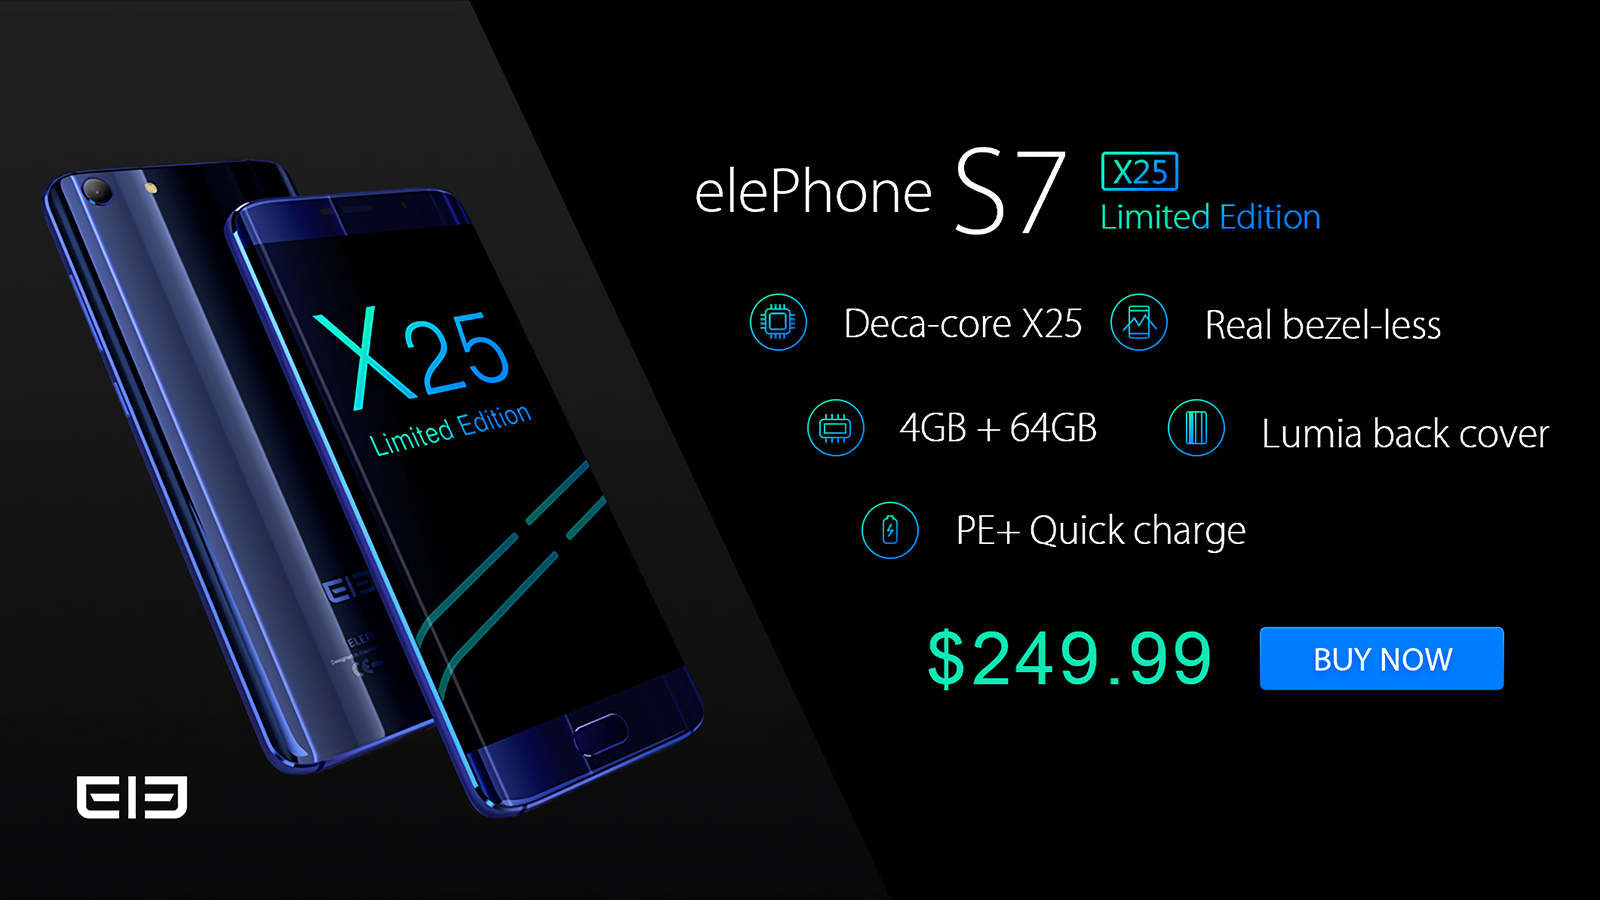 Elephone S7 Limited Edtion